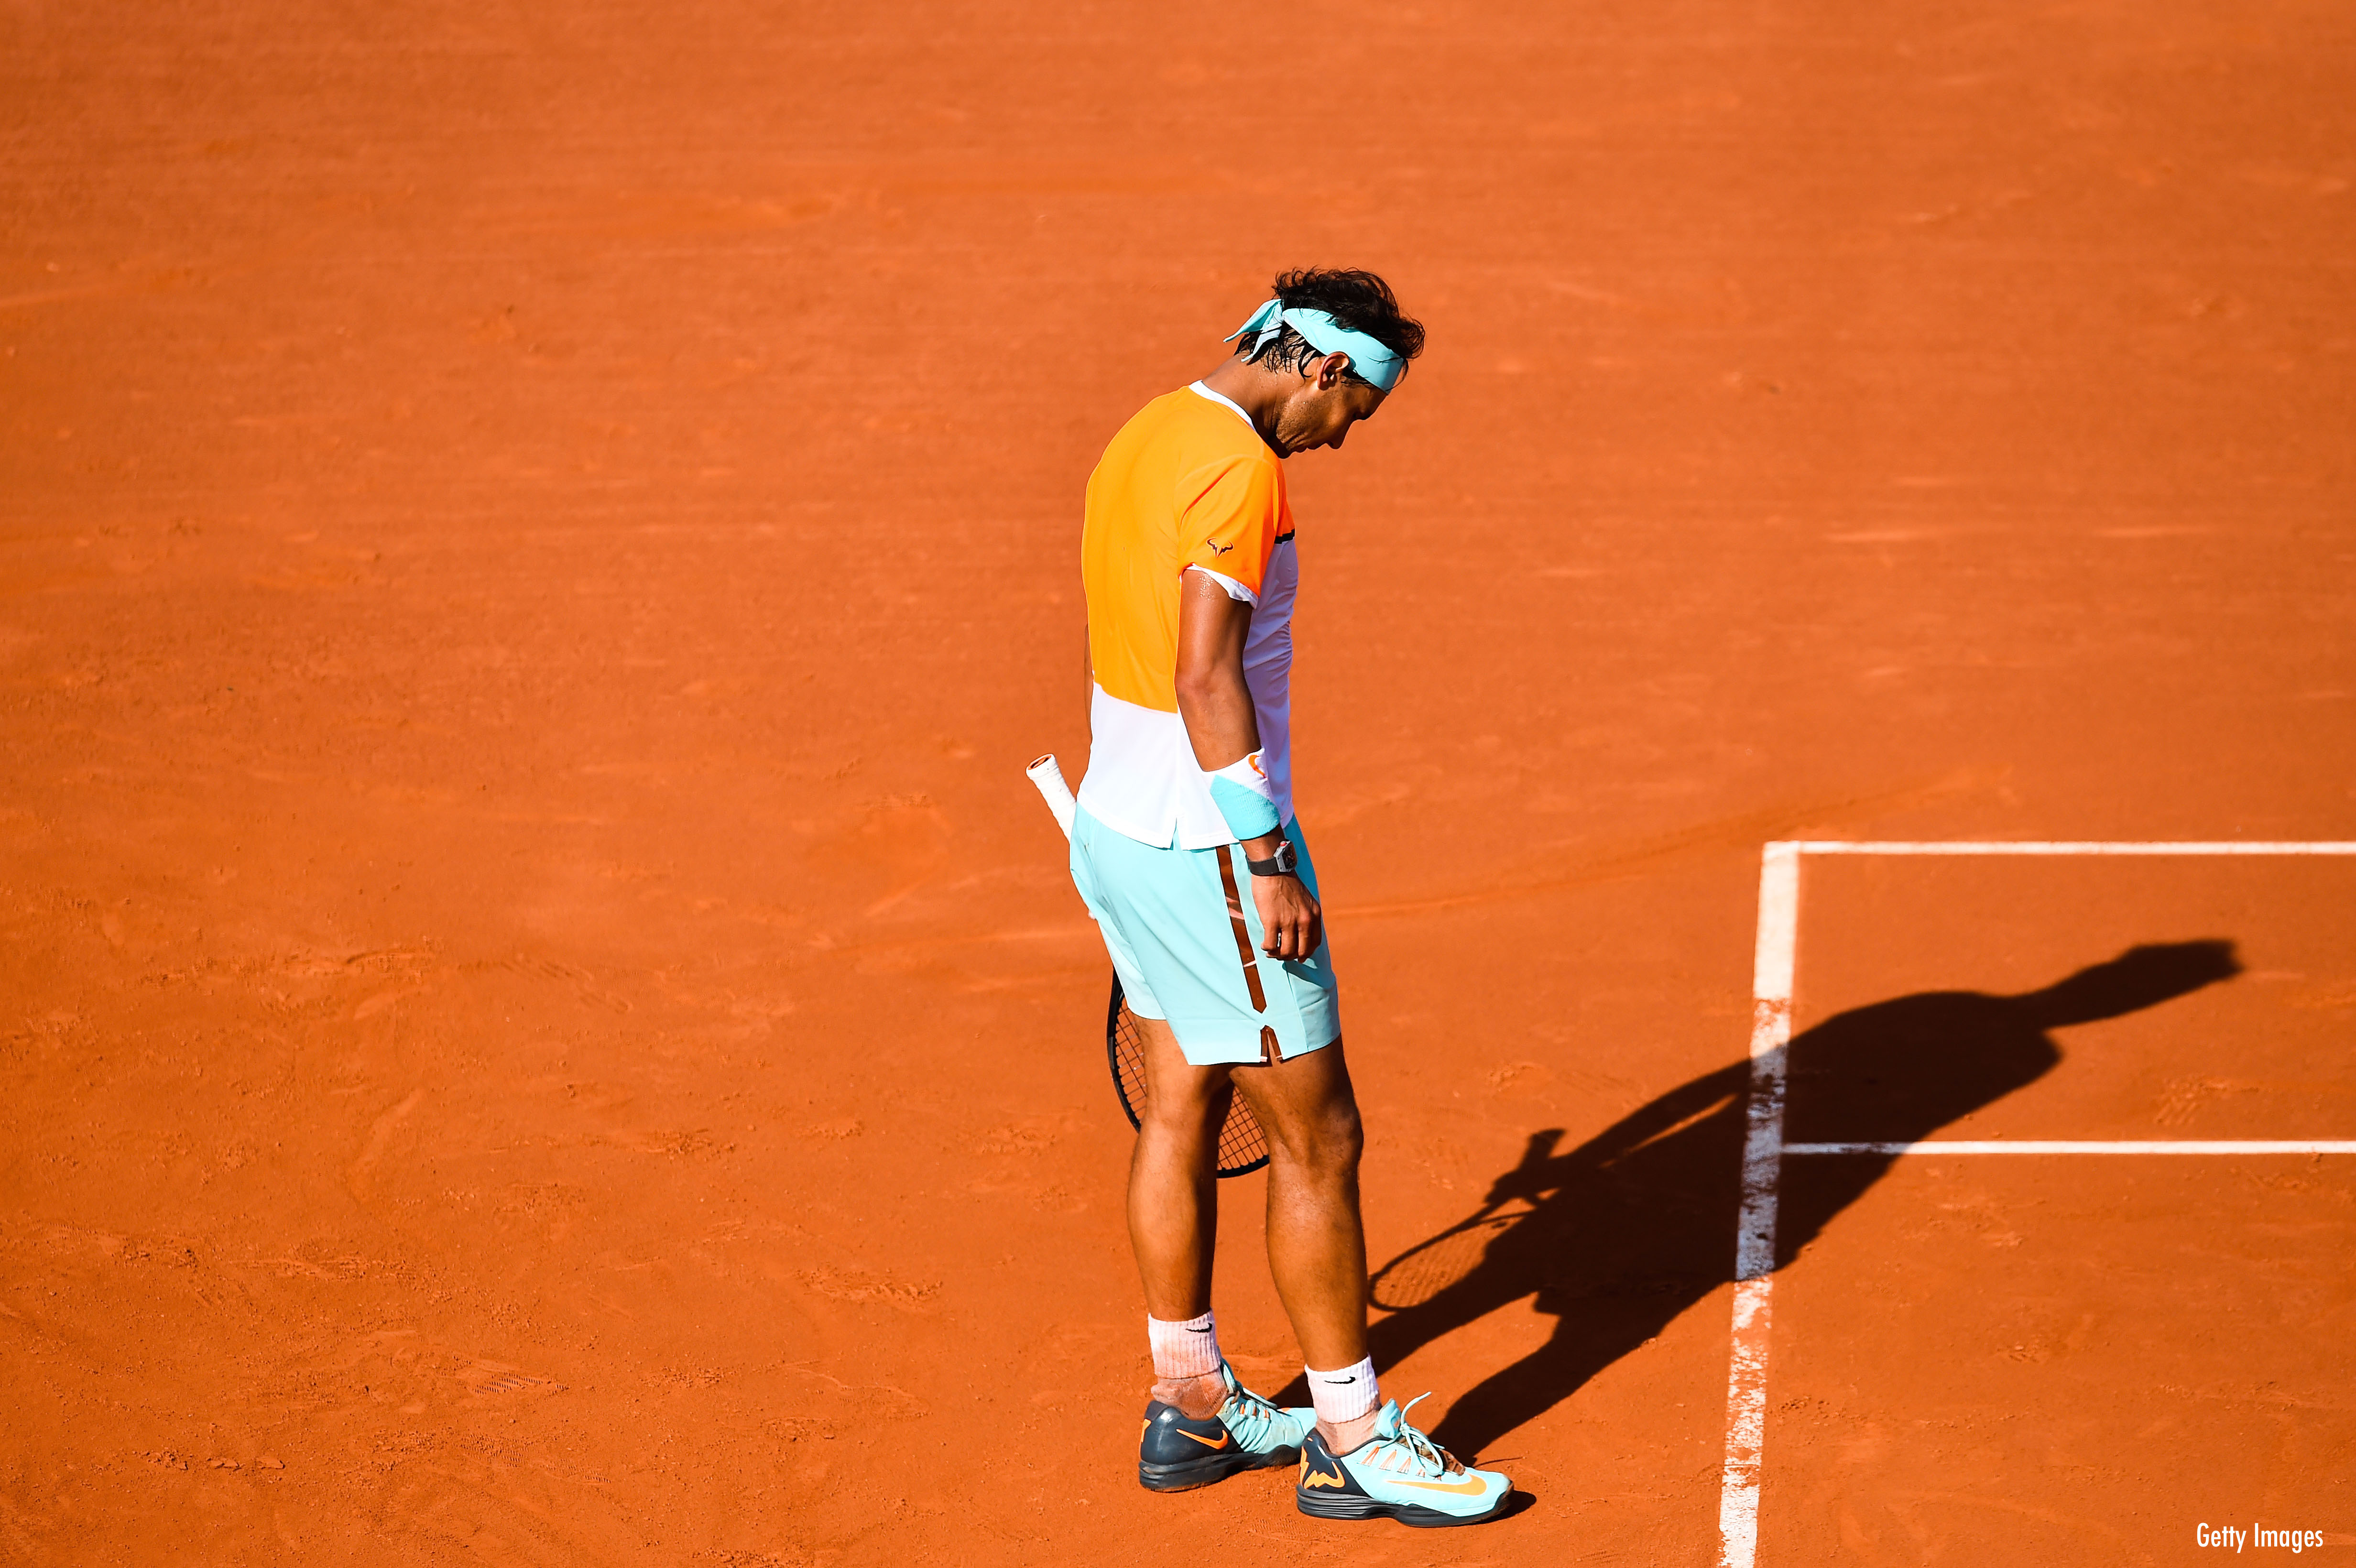 Rafael Nadal Is Off To His Worst Clay Court Start Ever For The Win